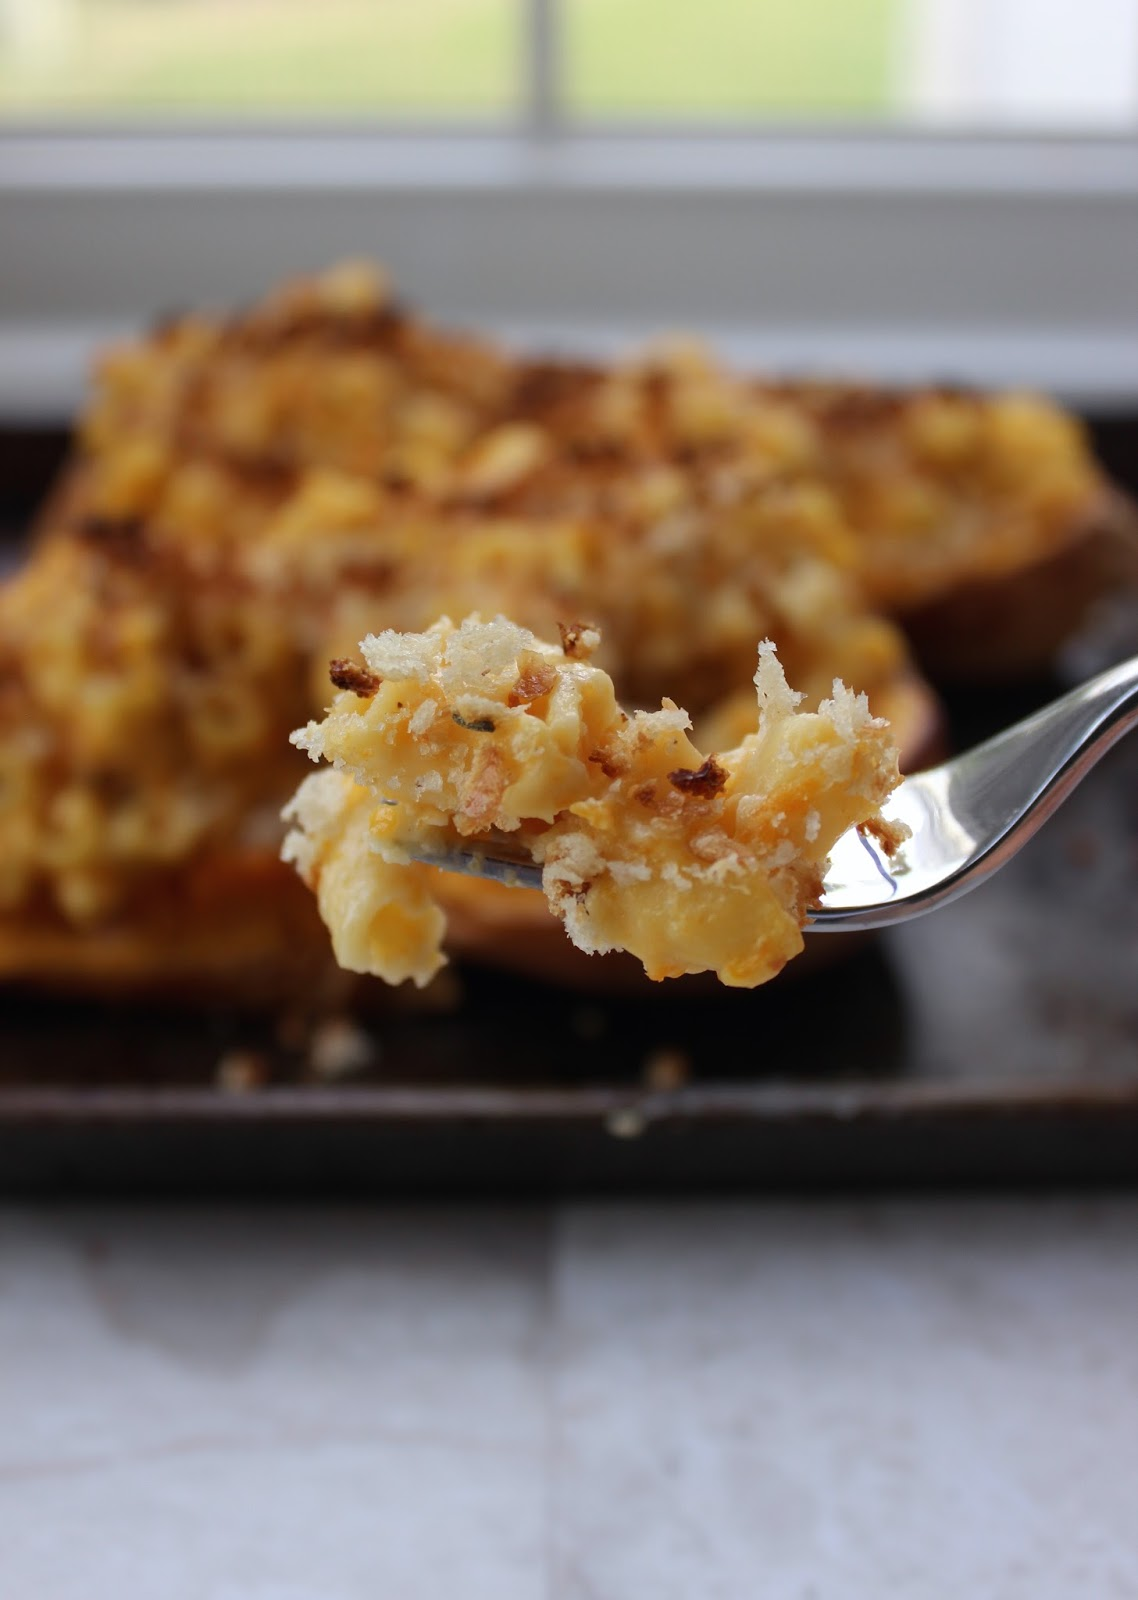 Stew or a Story: Mac and Cheese Stuffed Butternut Squash